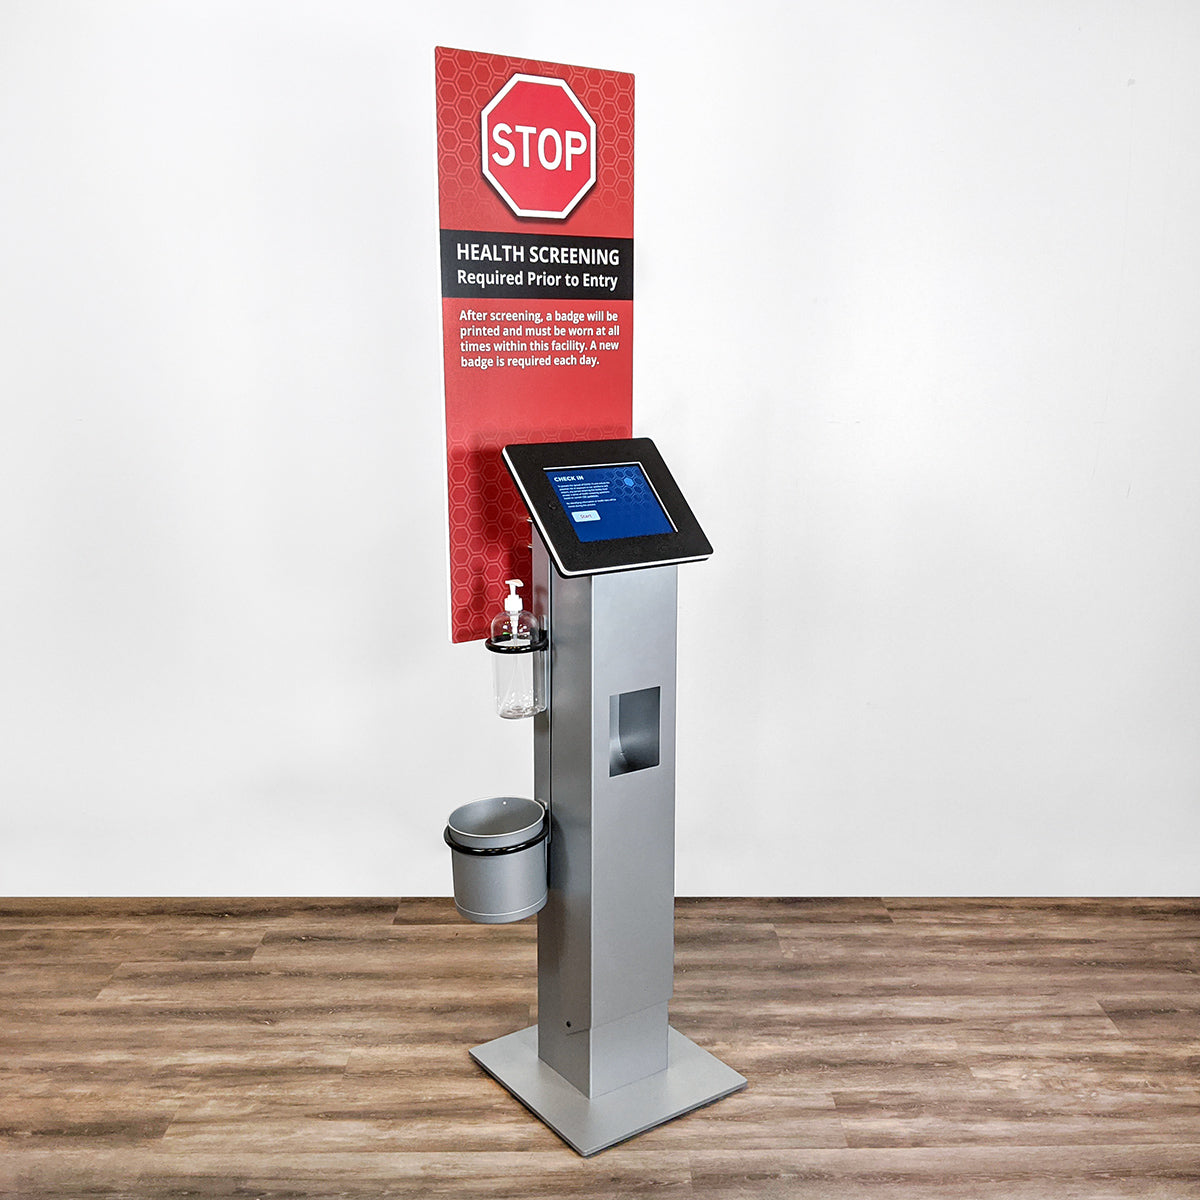 A printer kiosk with branded signage to make it clear that visitors and employees must check in before entering.